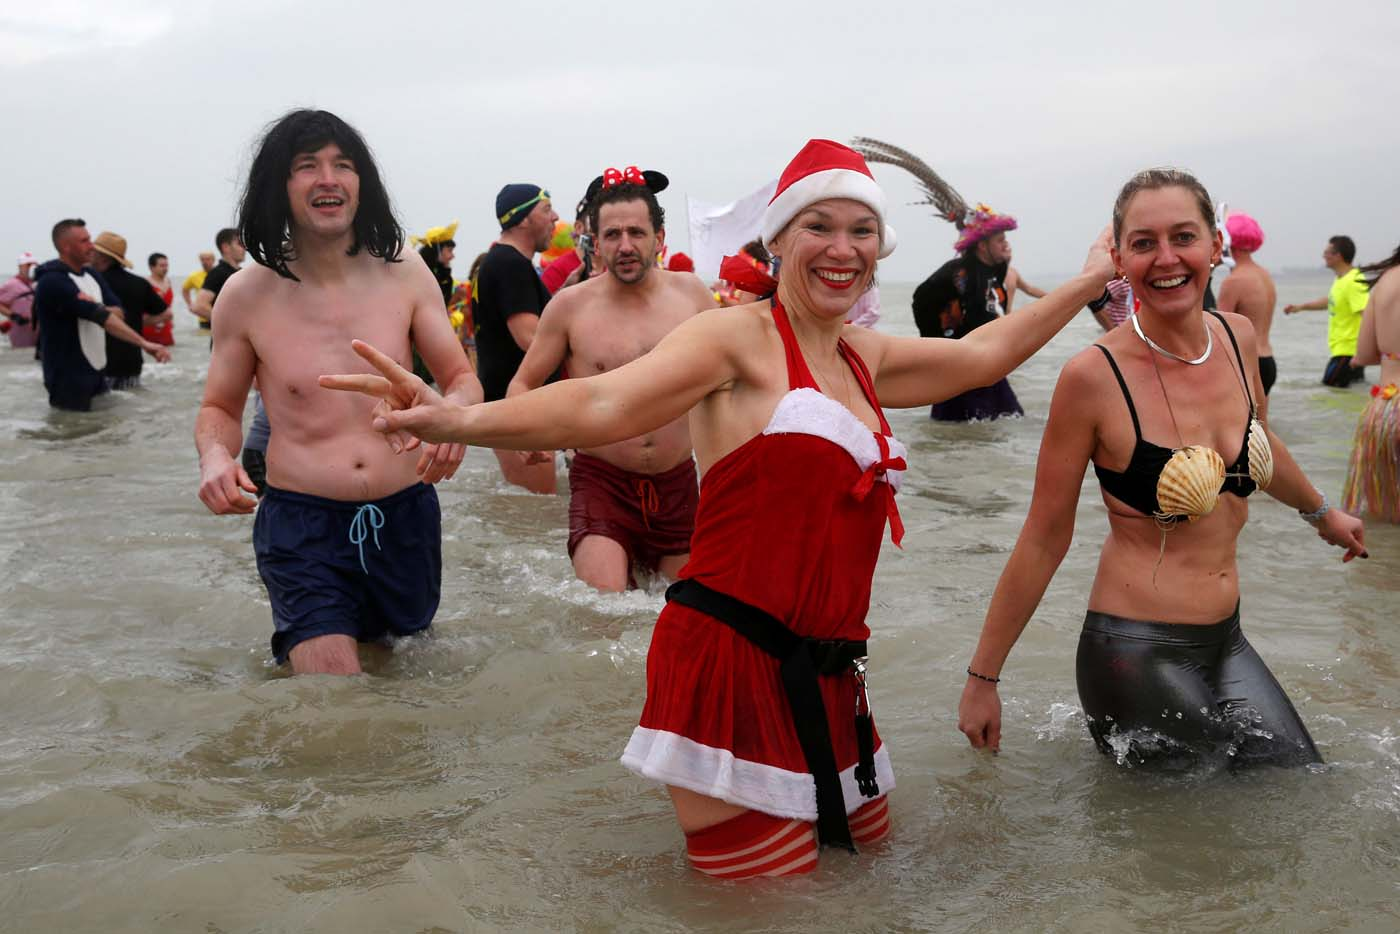 People wearing costumes participate in a traditional New Year's Day swim in Dunkirk, France January 1, 2017. REUTERS/Pascal Rossignol